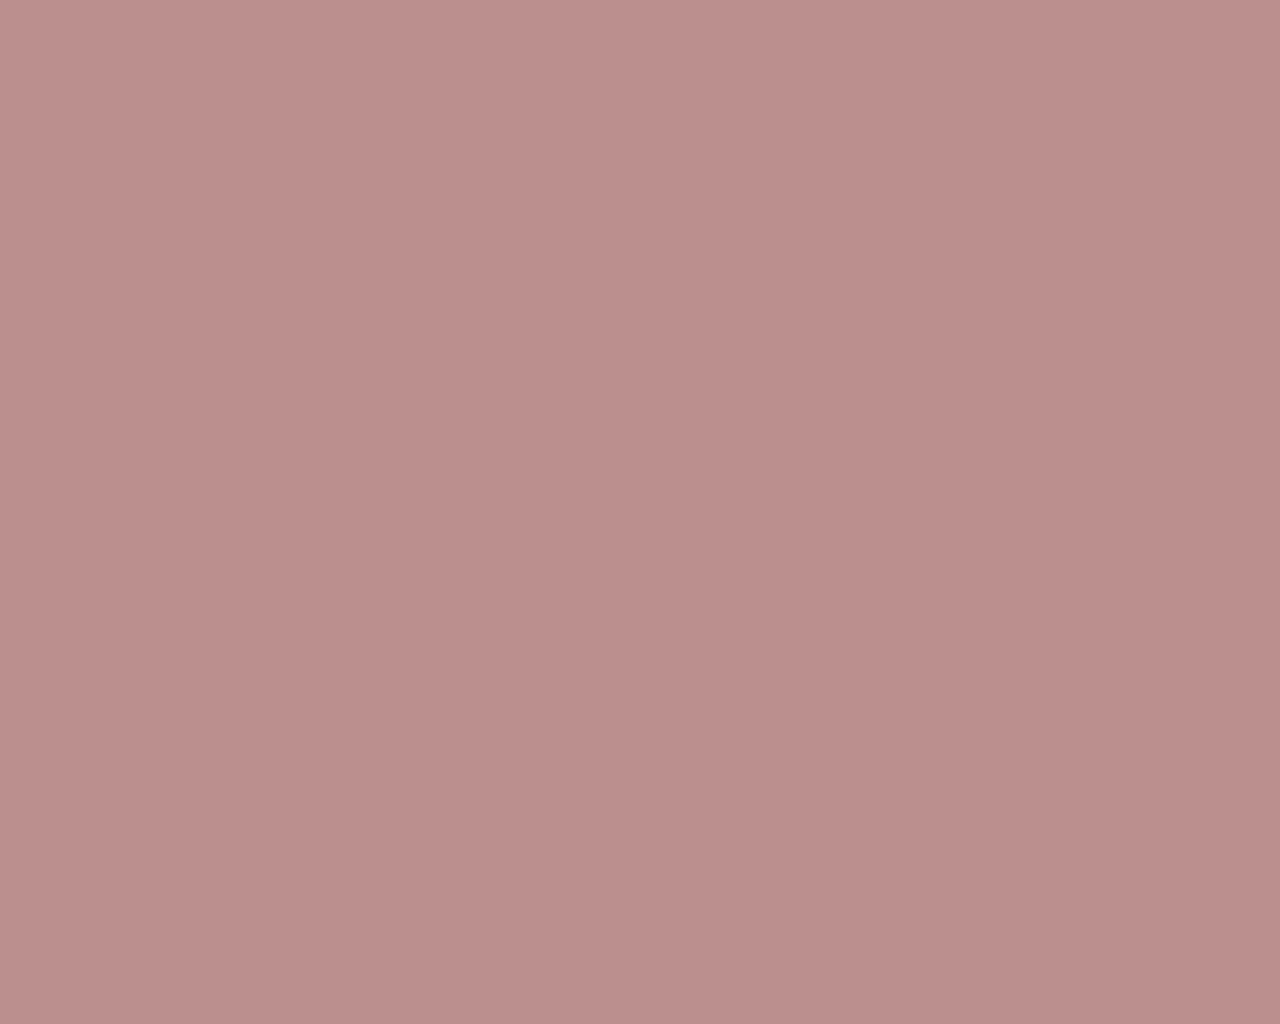 1280x1024 Rosy Brown Solid Color Background